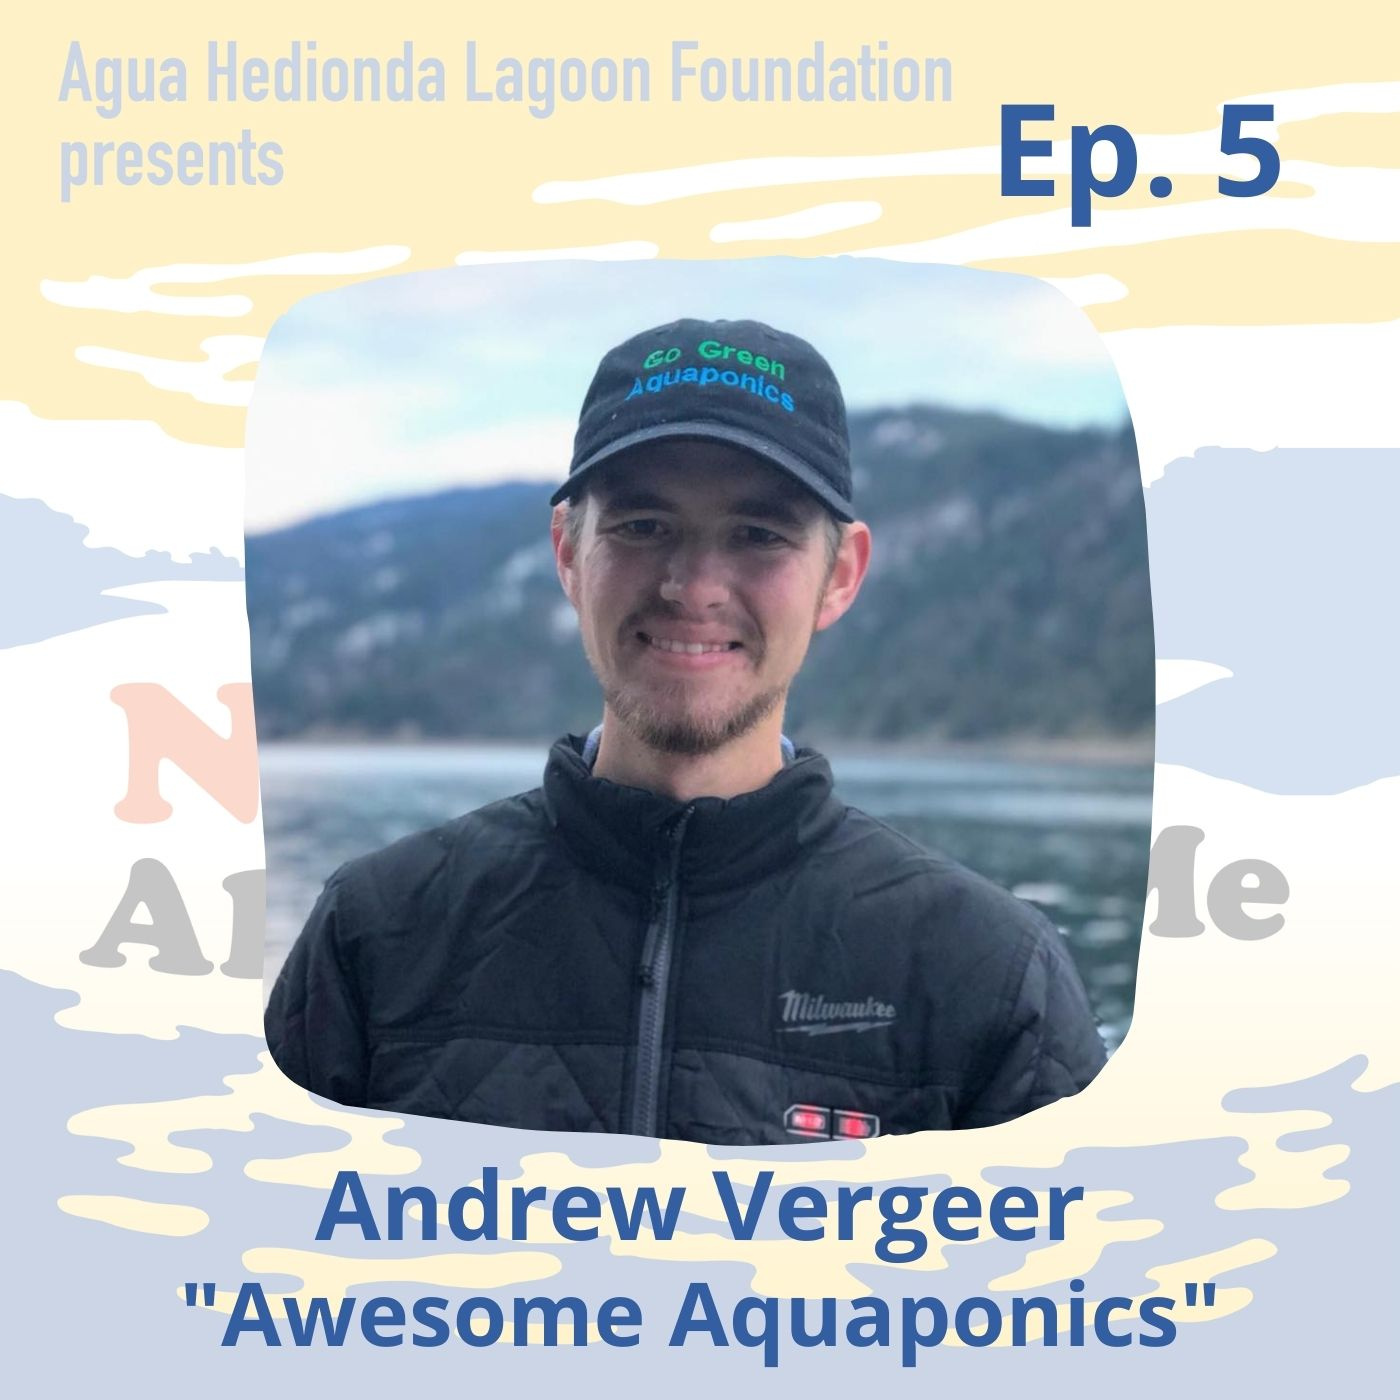 Ep. 5 Andrew Vergeer: Awesome Aquaponics